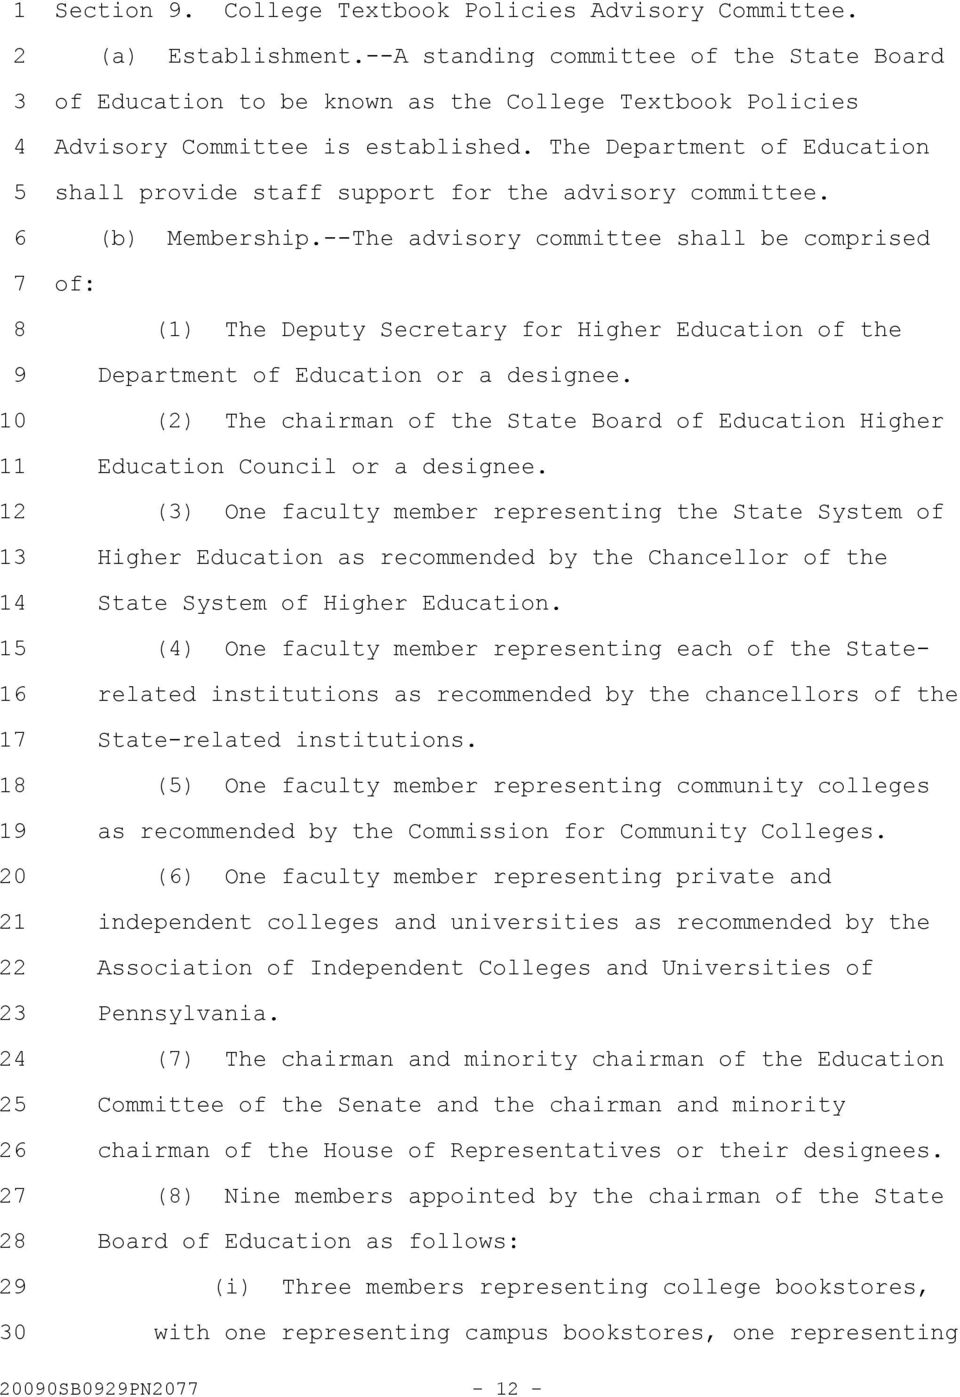 The Department of Education shall provide staff support for the advisory committee. (b) Membership.